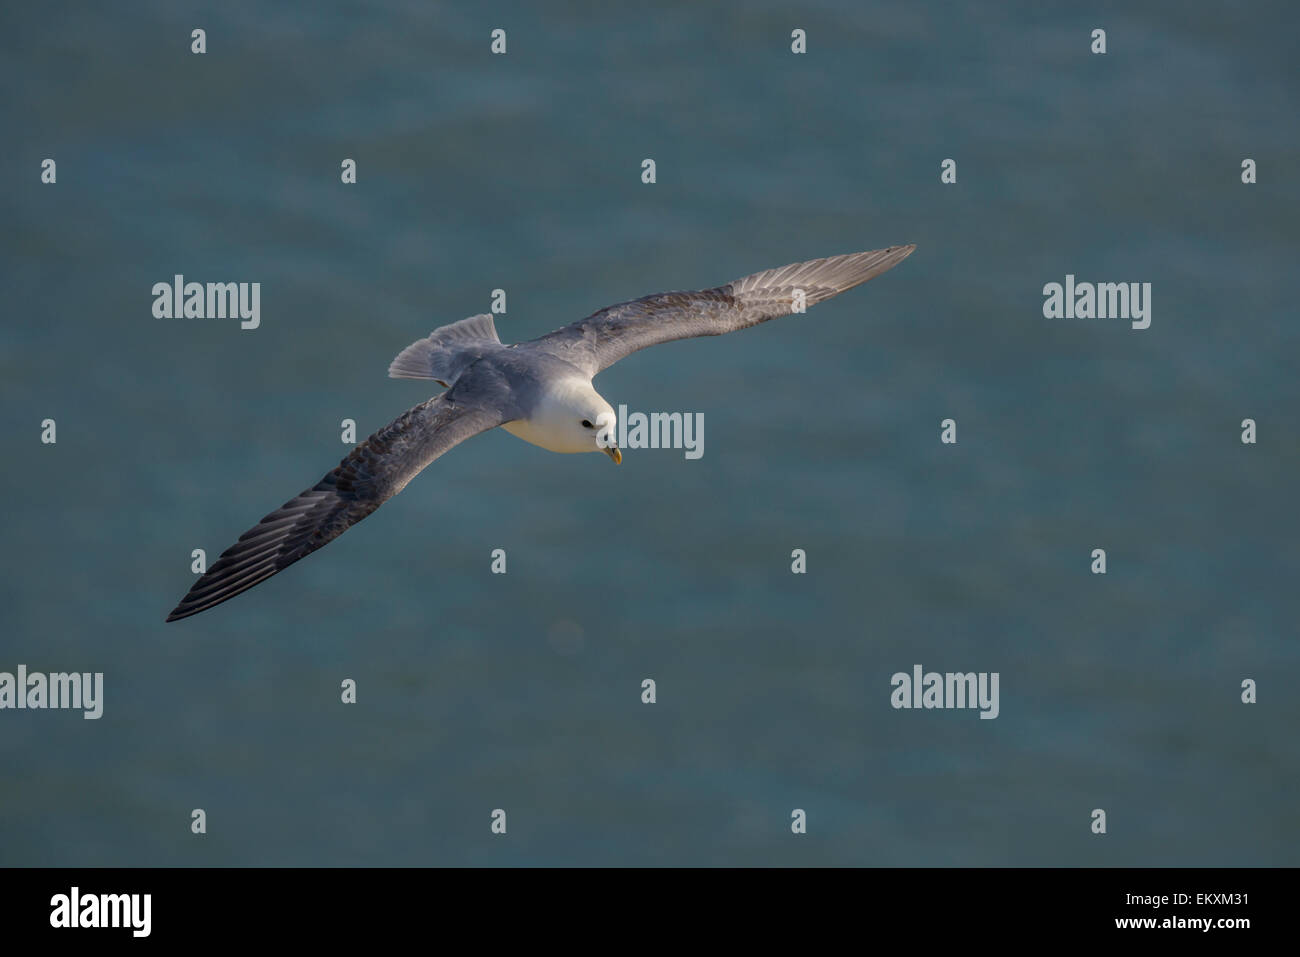 One a northern fulmar with typical stiff-wings, gliding above the North Sea ocean. Horizontal format with copyspace. - Stock Image